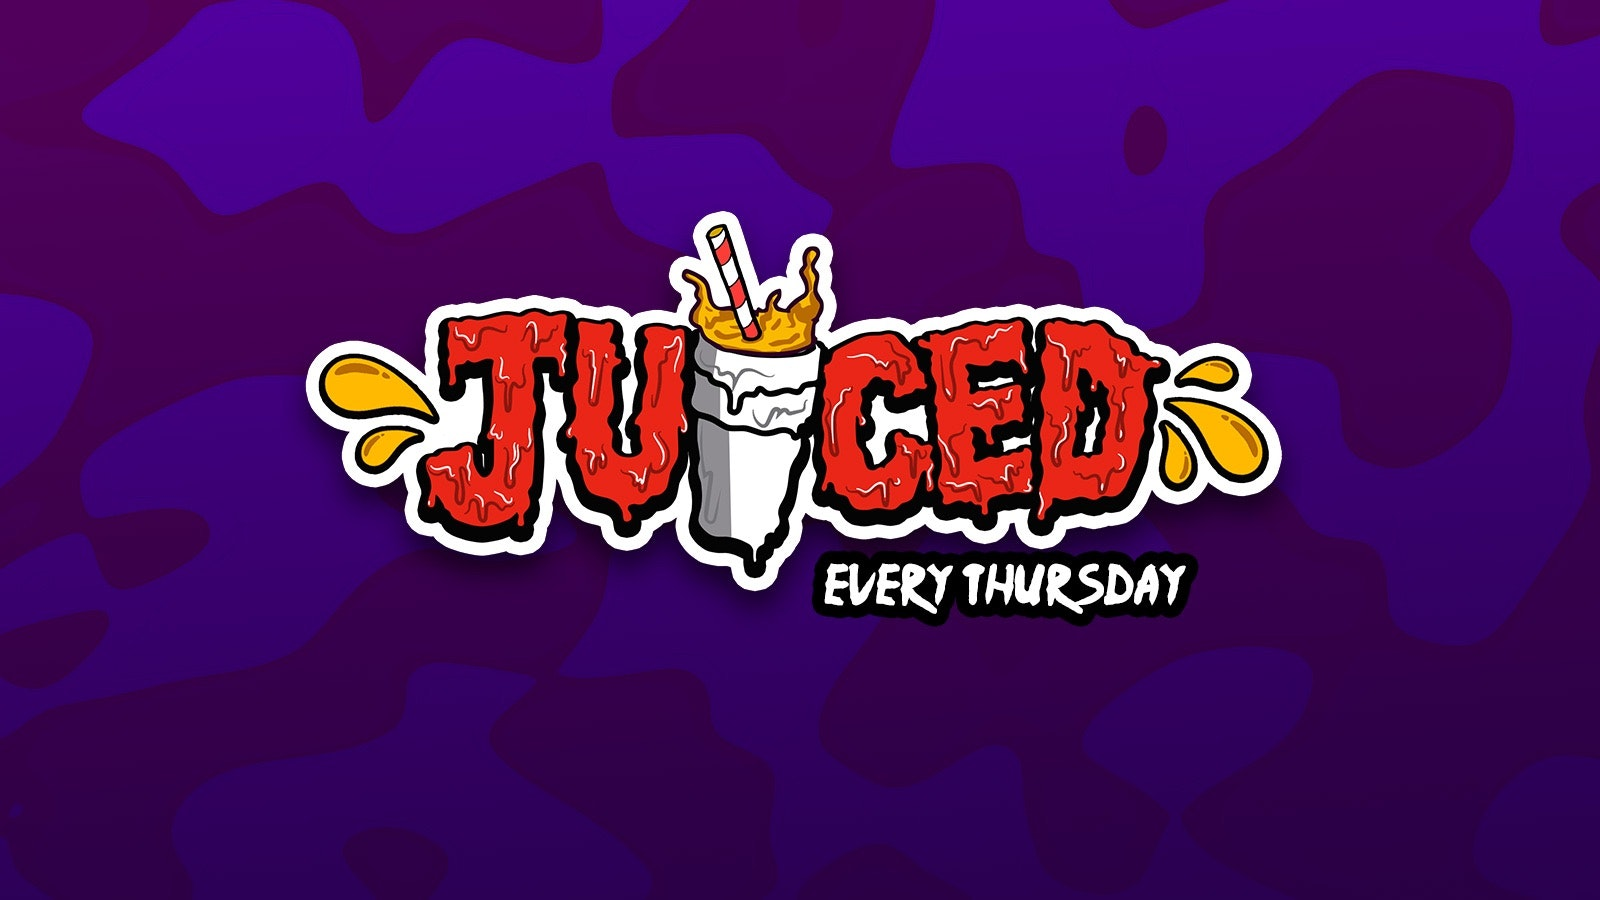 THE 2021 JUICED THURSDAYS FINALE – FREE PIZZA GIVEAWAY!